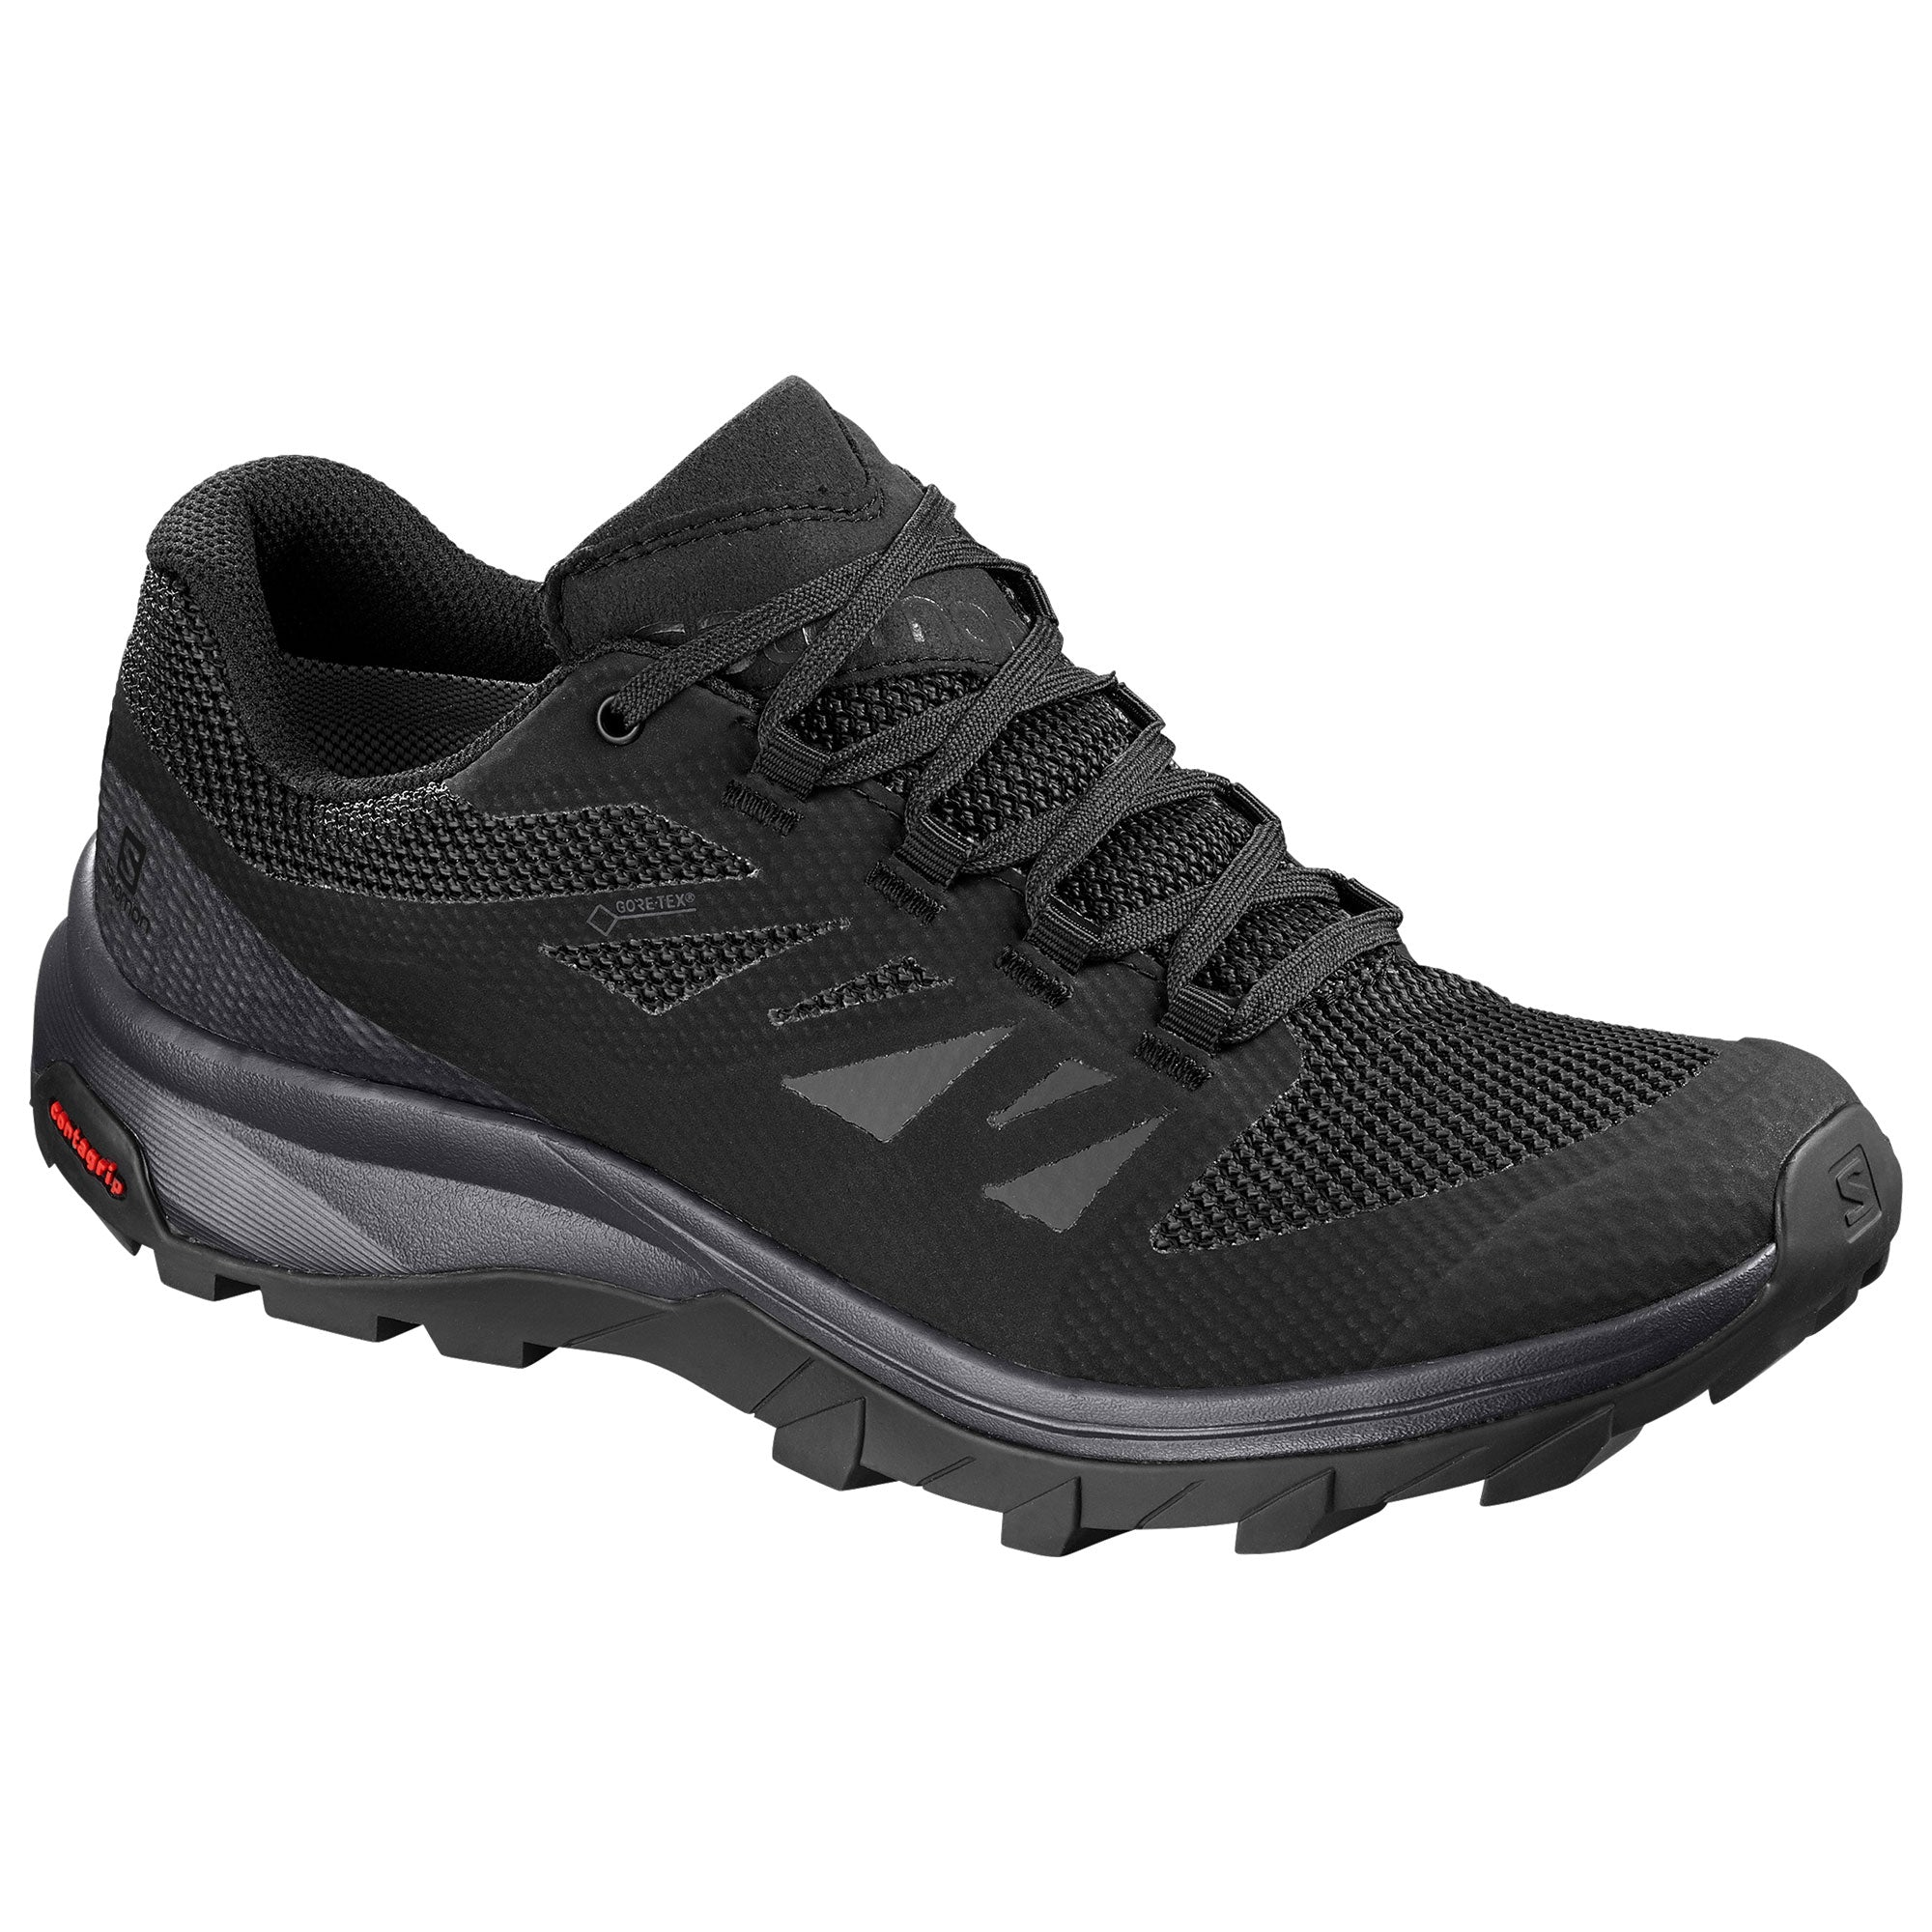 Salomon Outline GTX Ladies Shoe 2019